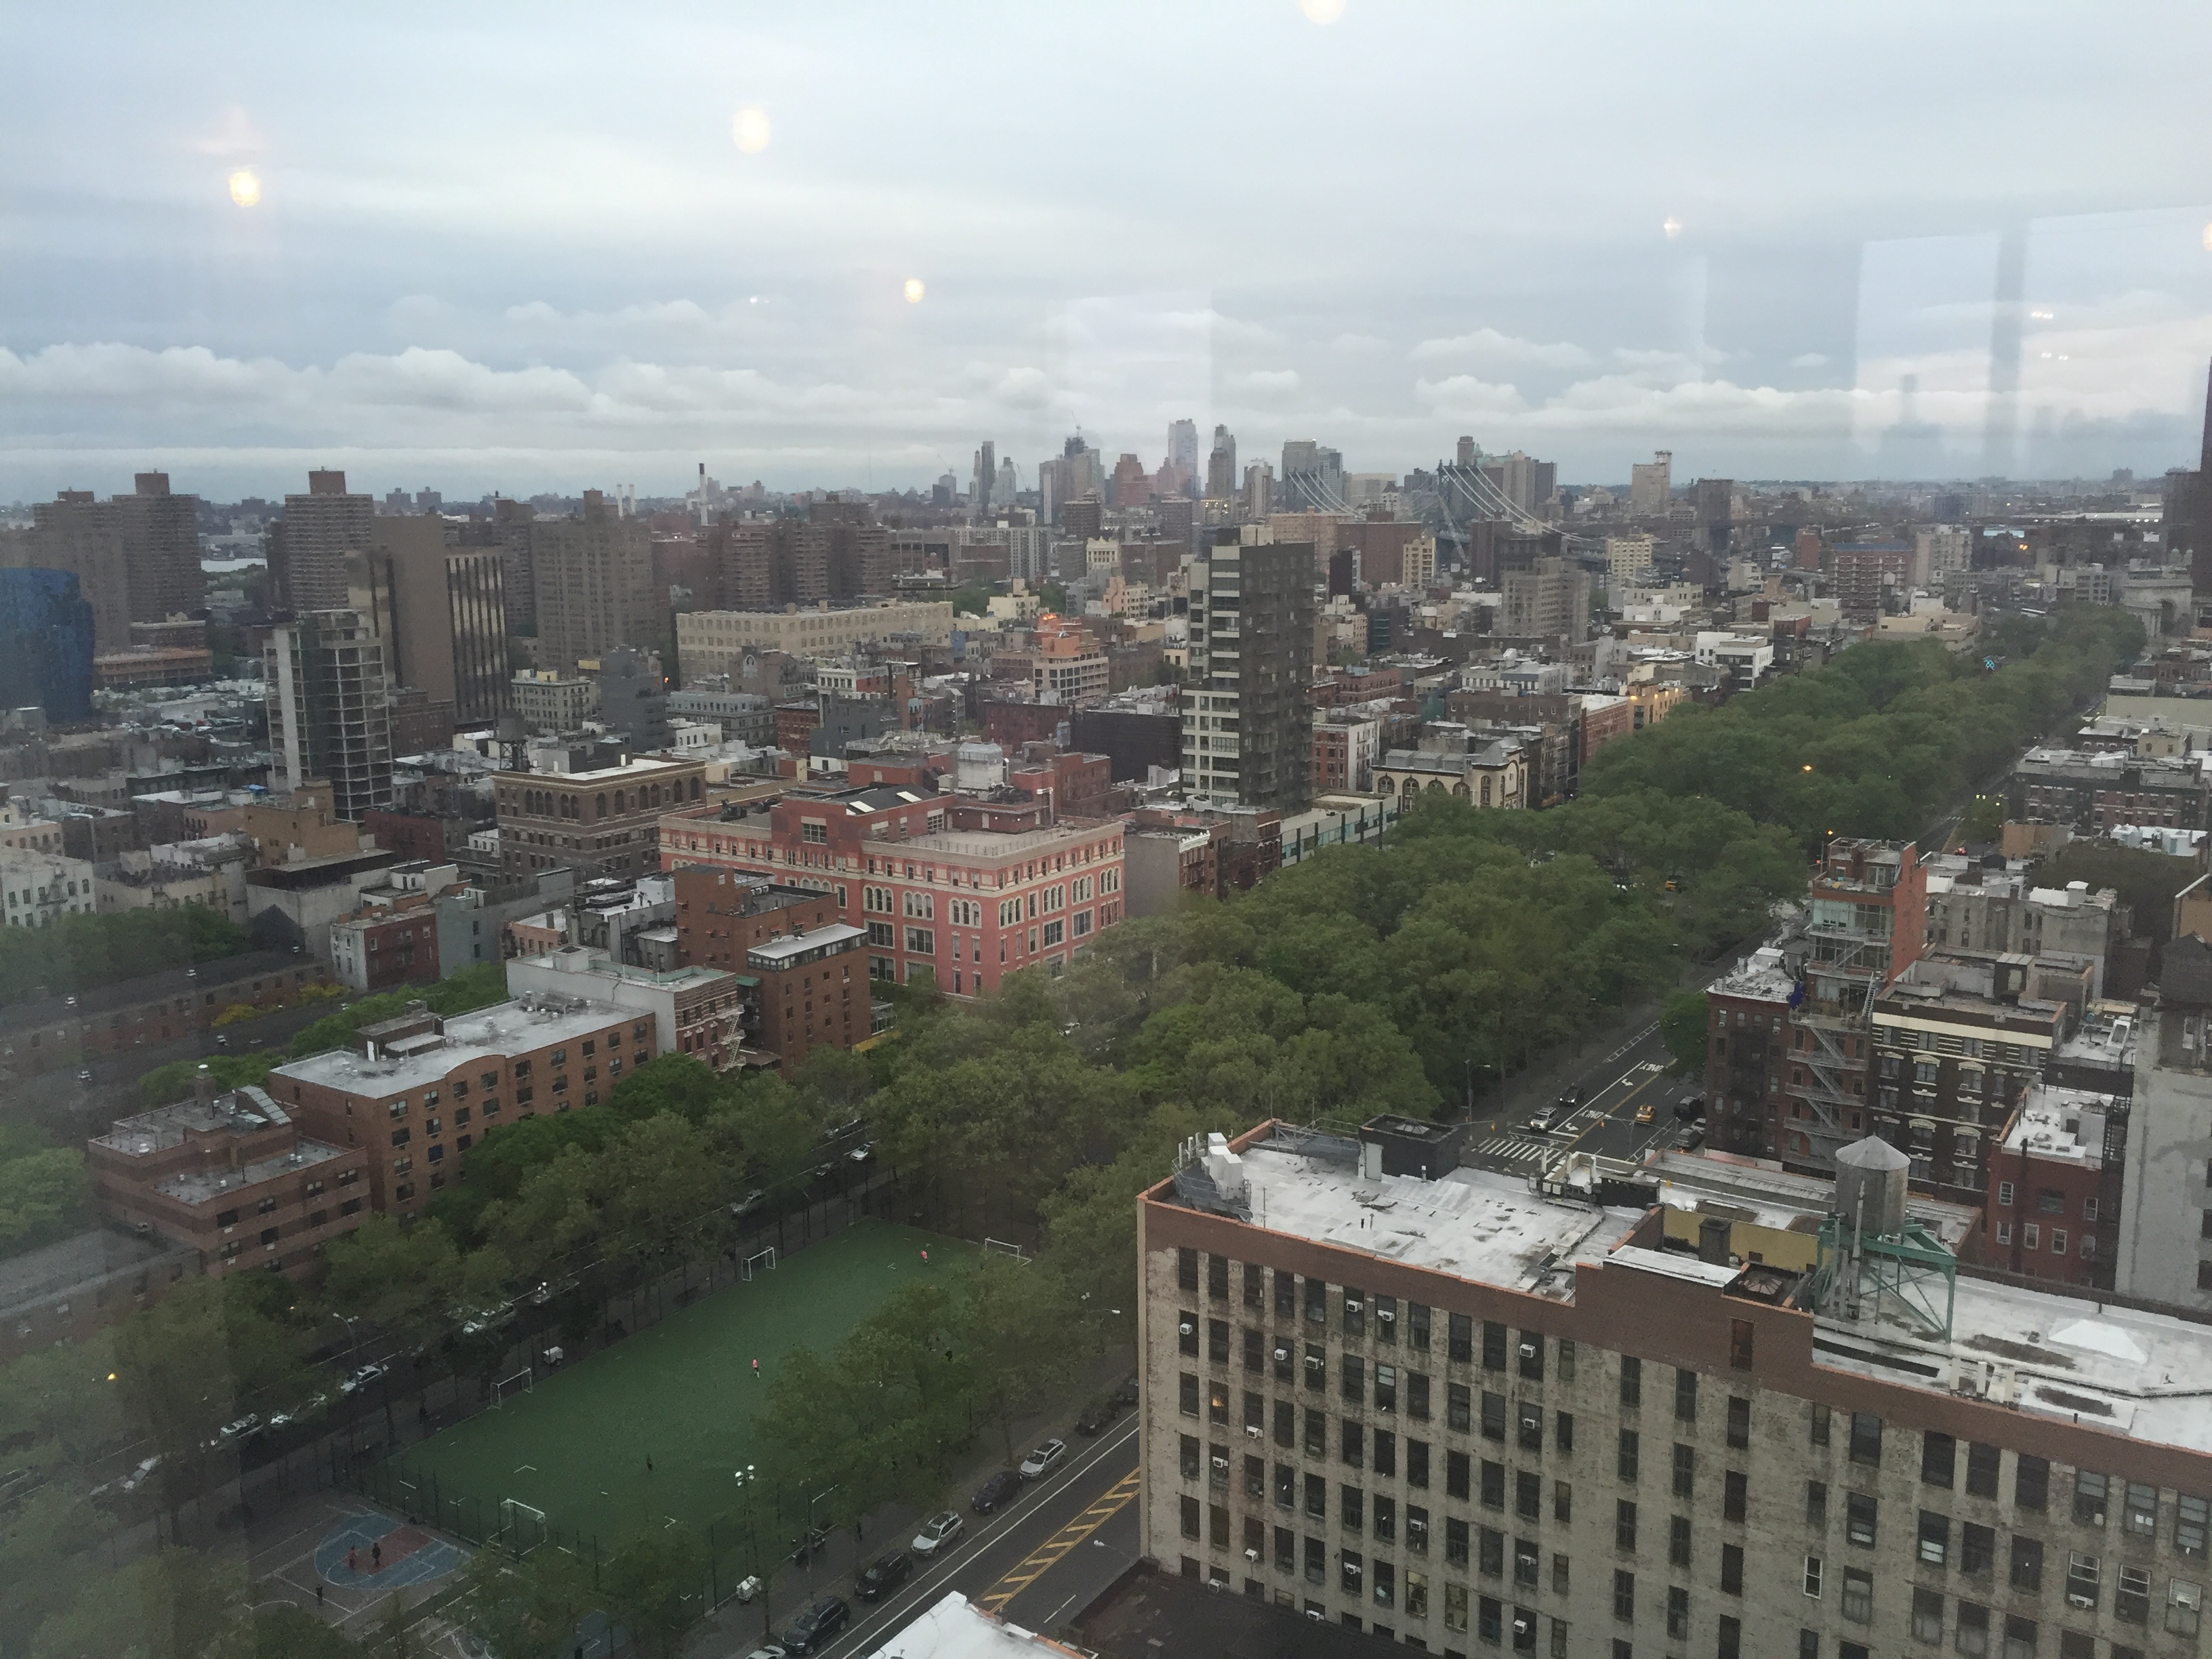 Southeast view from 215 Chrystie. Photo by Evan Bindelglass, taken on iPhone 6